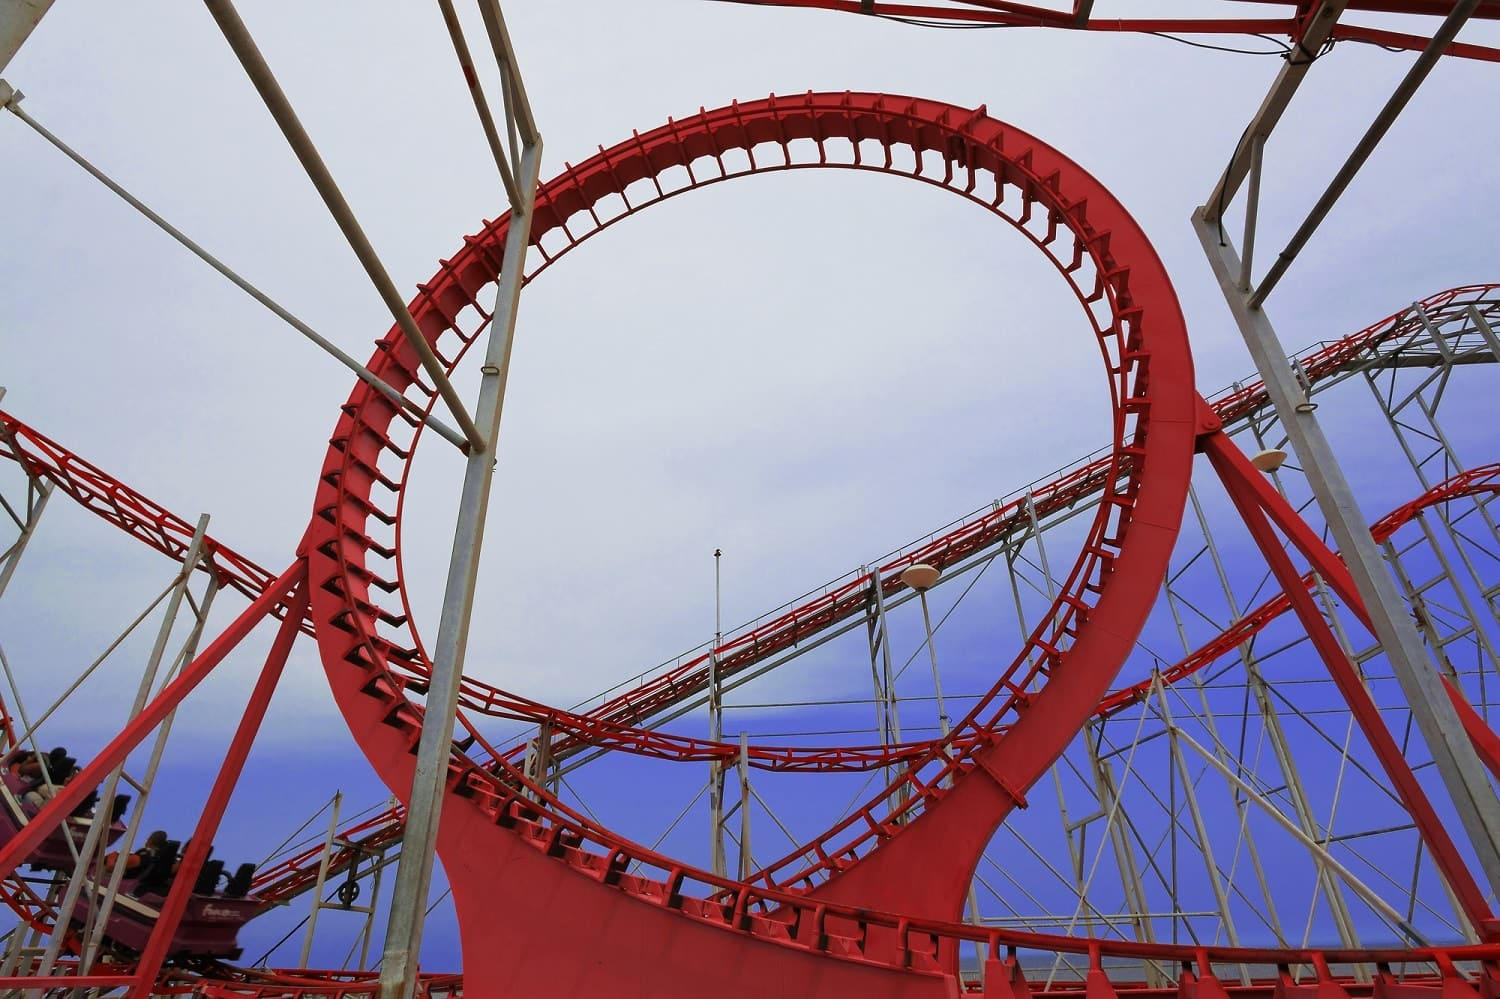 Roller coasters: evolution of screaming machines